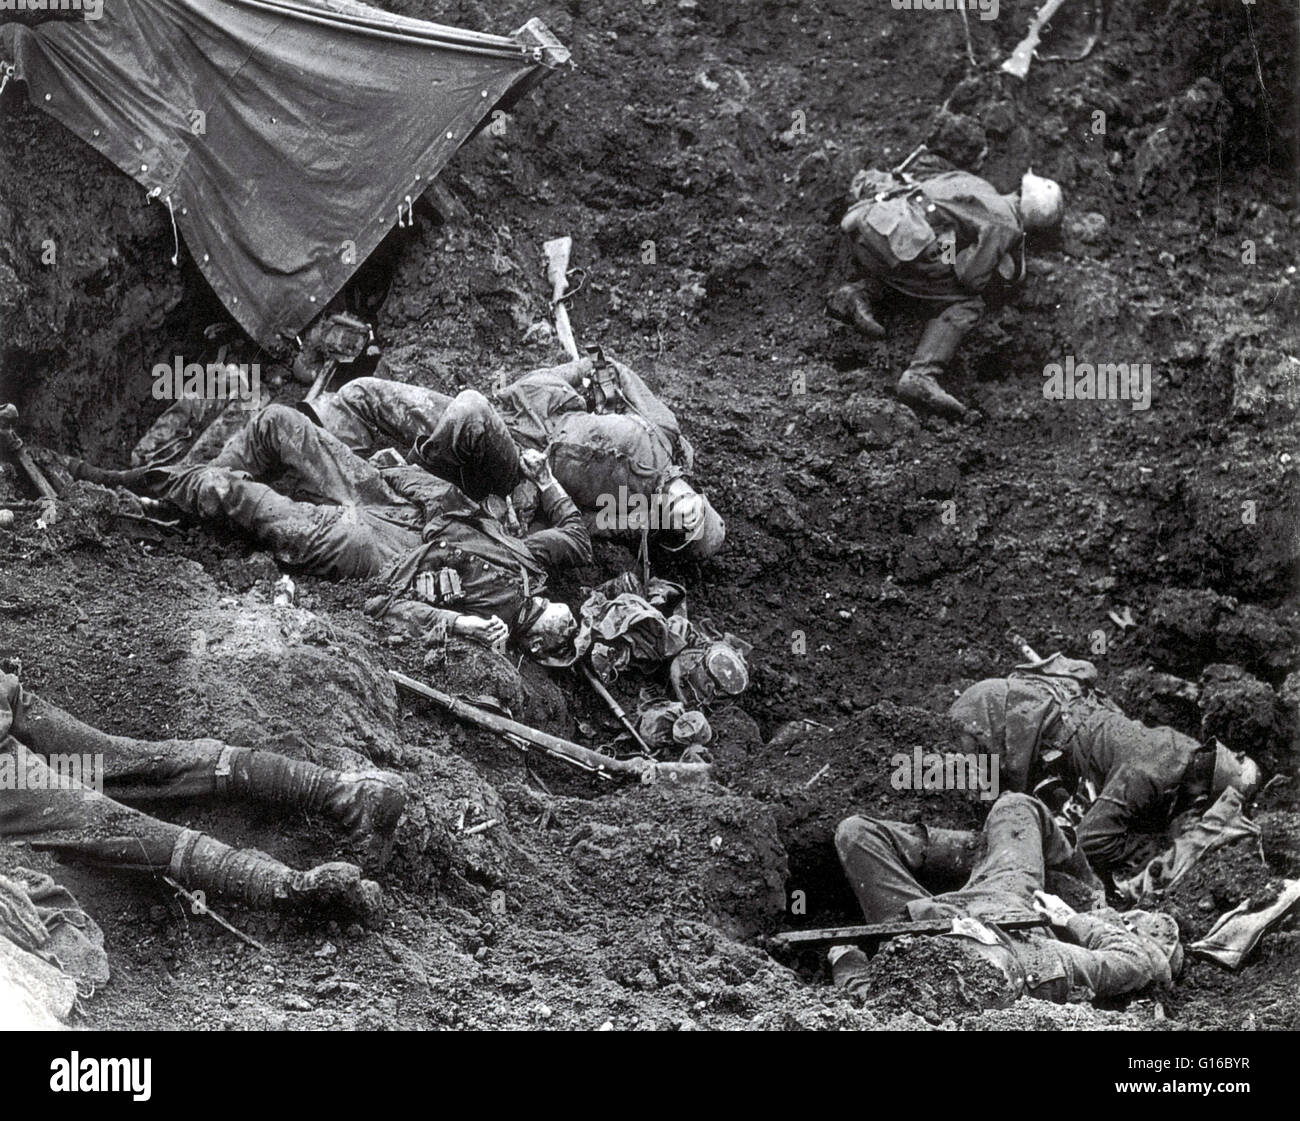 The Battle of Passchendaele was a campaign of WWI, fought by the British and their allies against the German Empire. Stock Photo